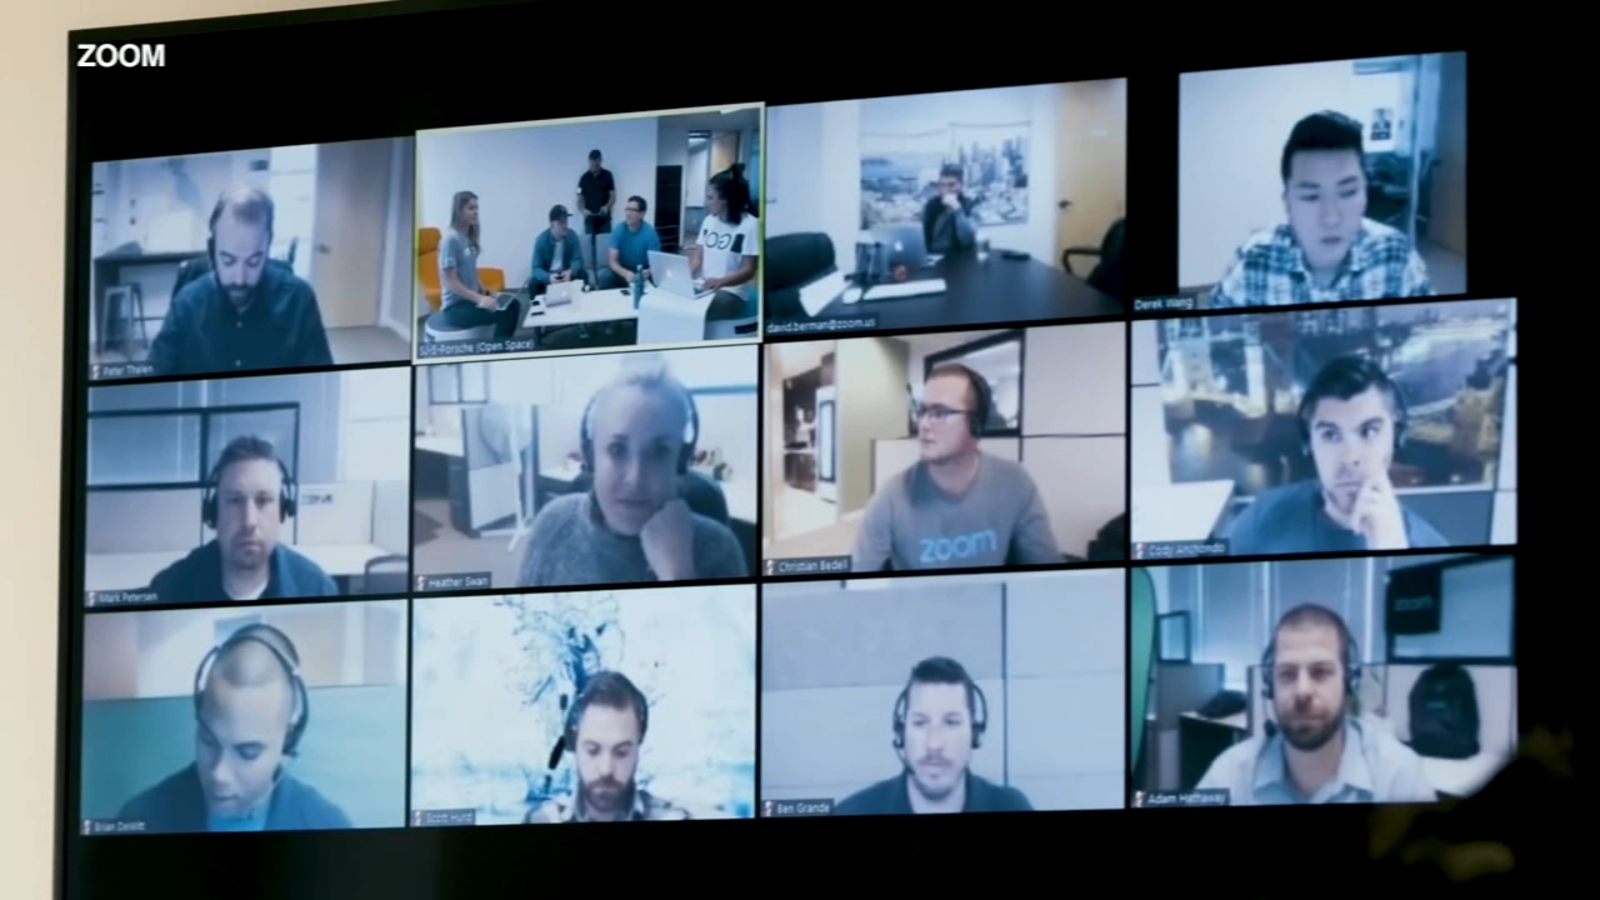 Zoom to make passwords, waiting rooms default after video chat hacking, hijacking reports